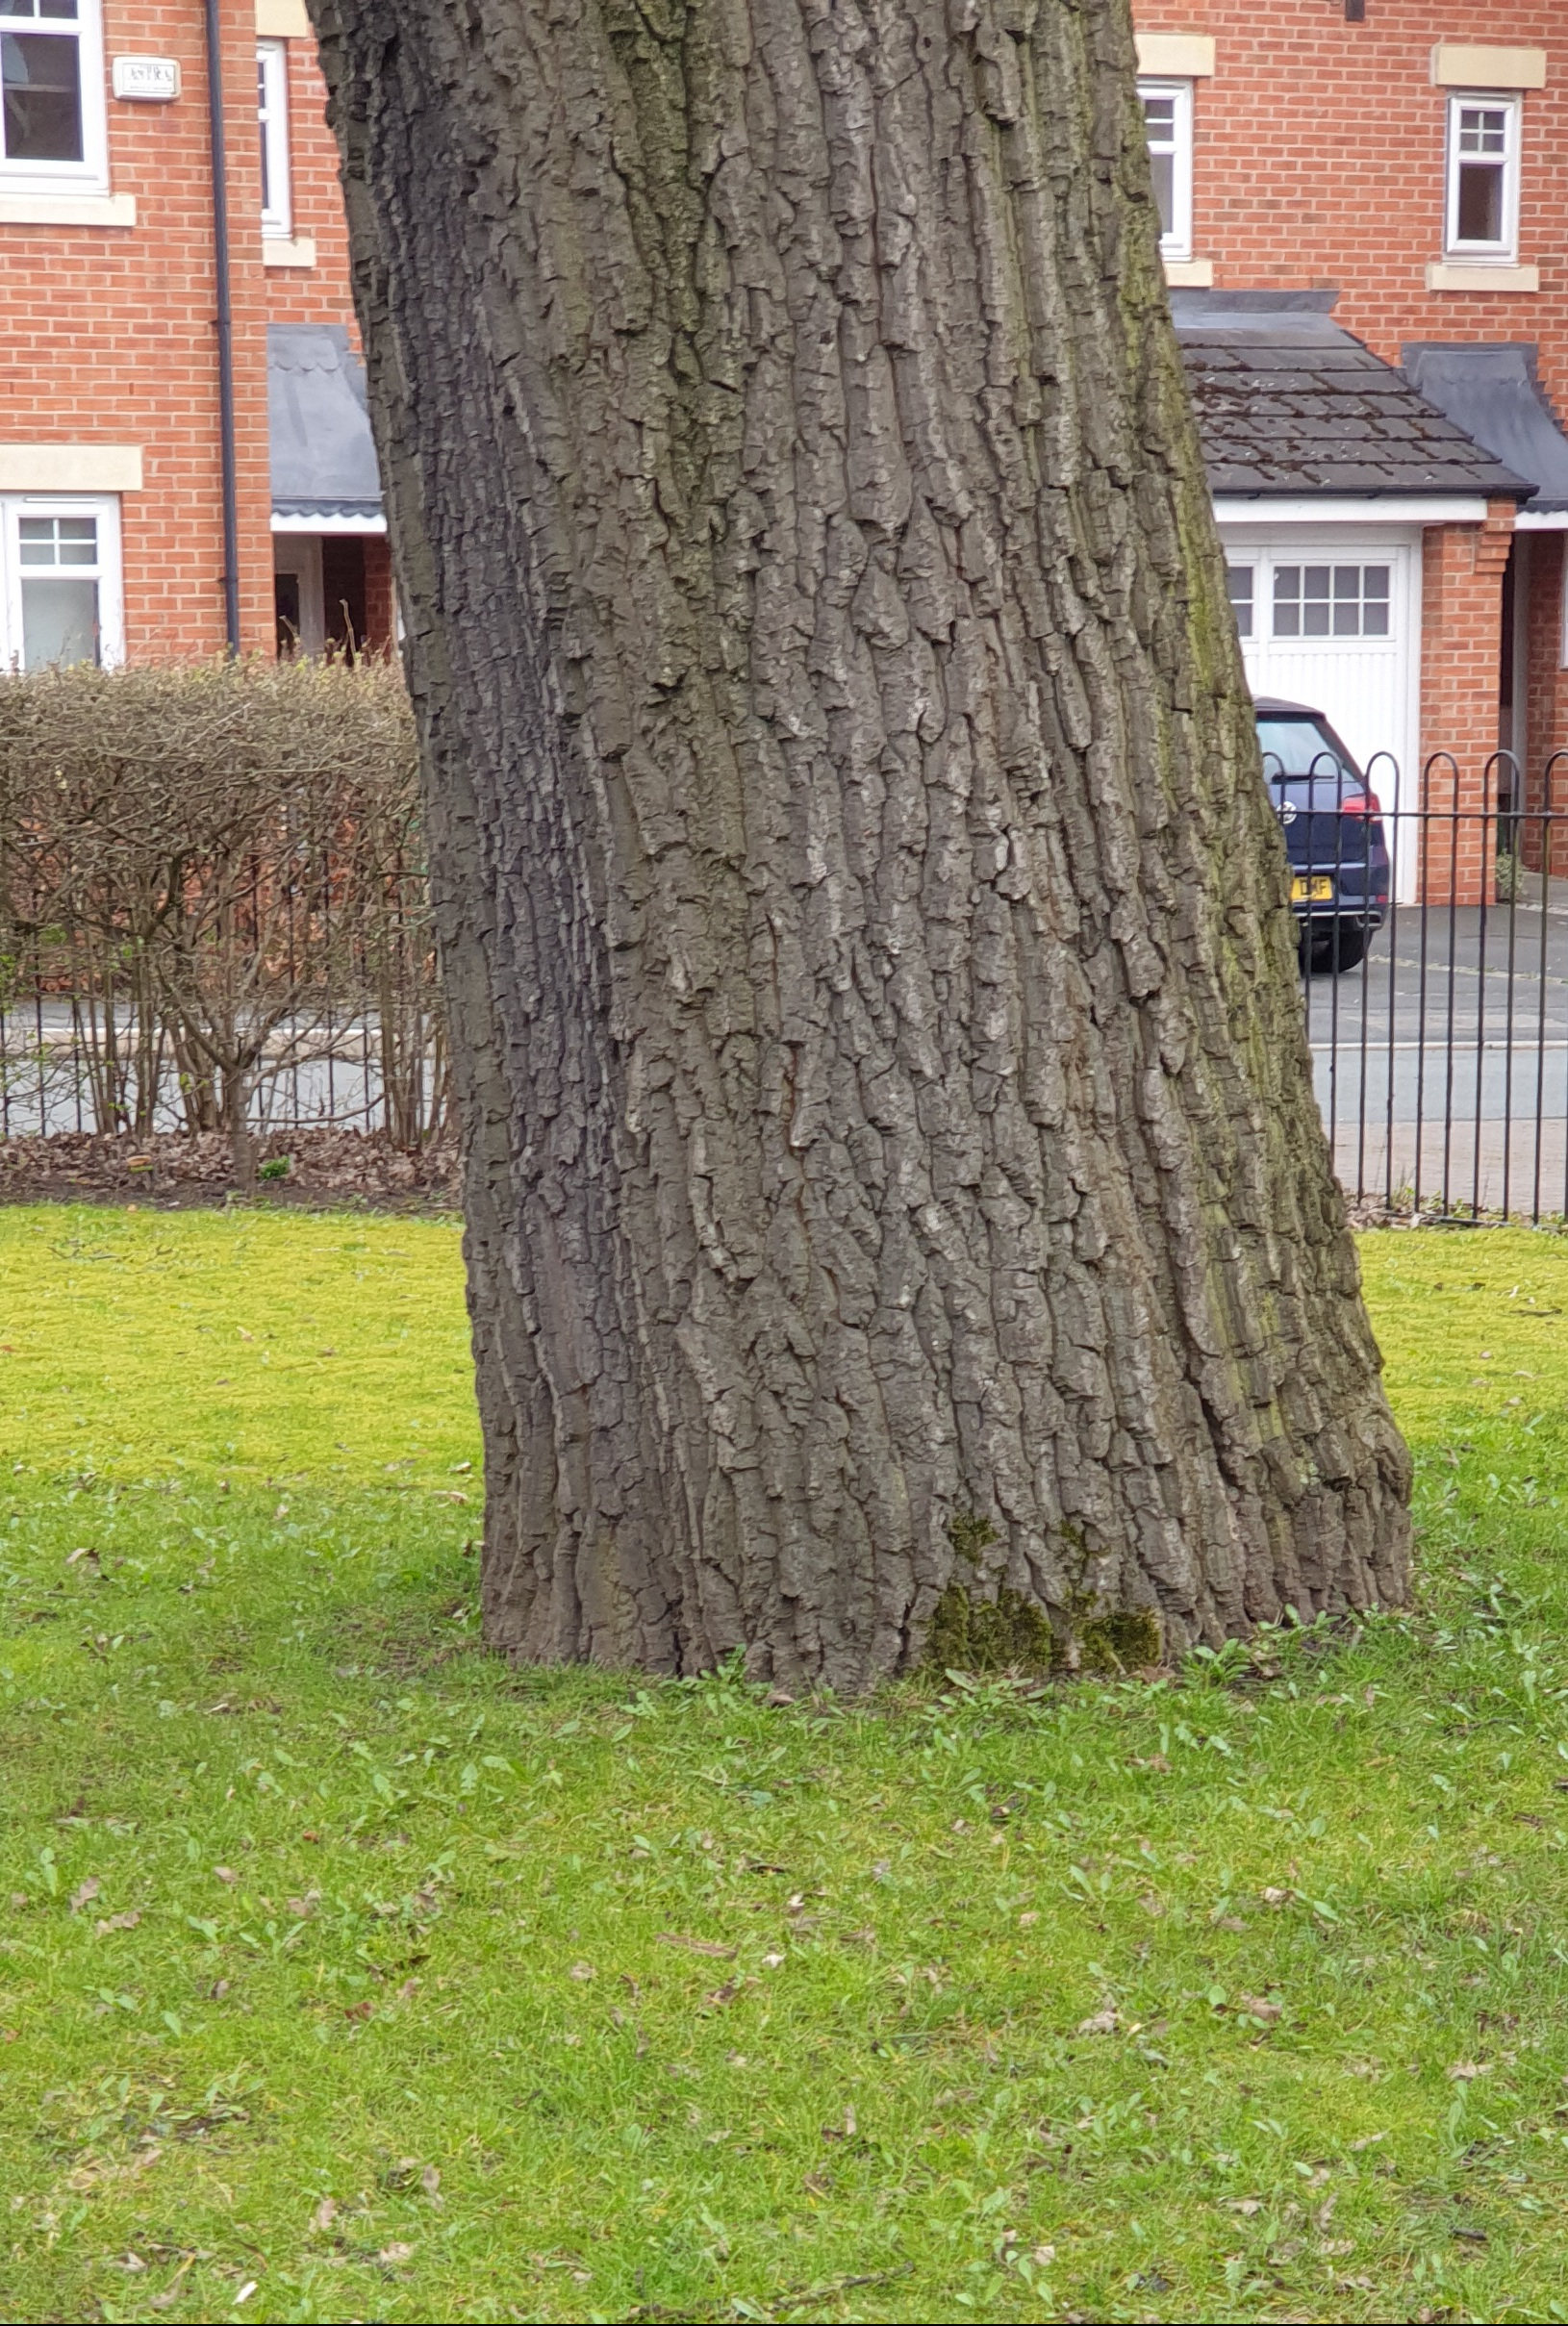 Mature oak tree, with a wide girth